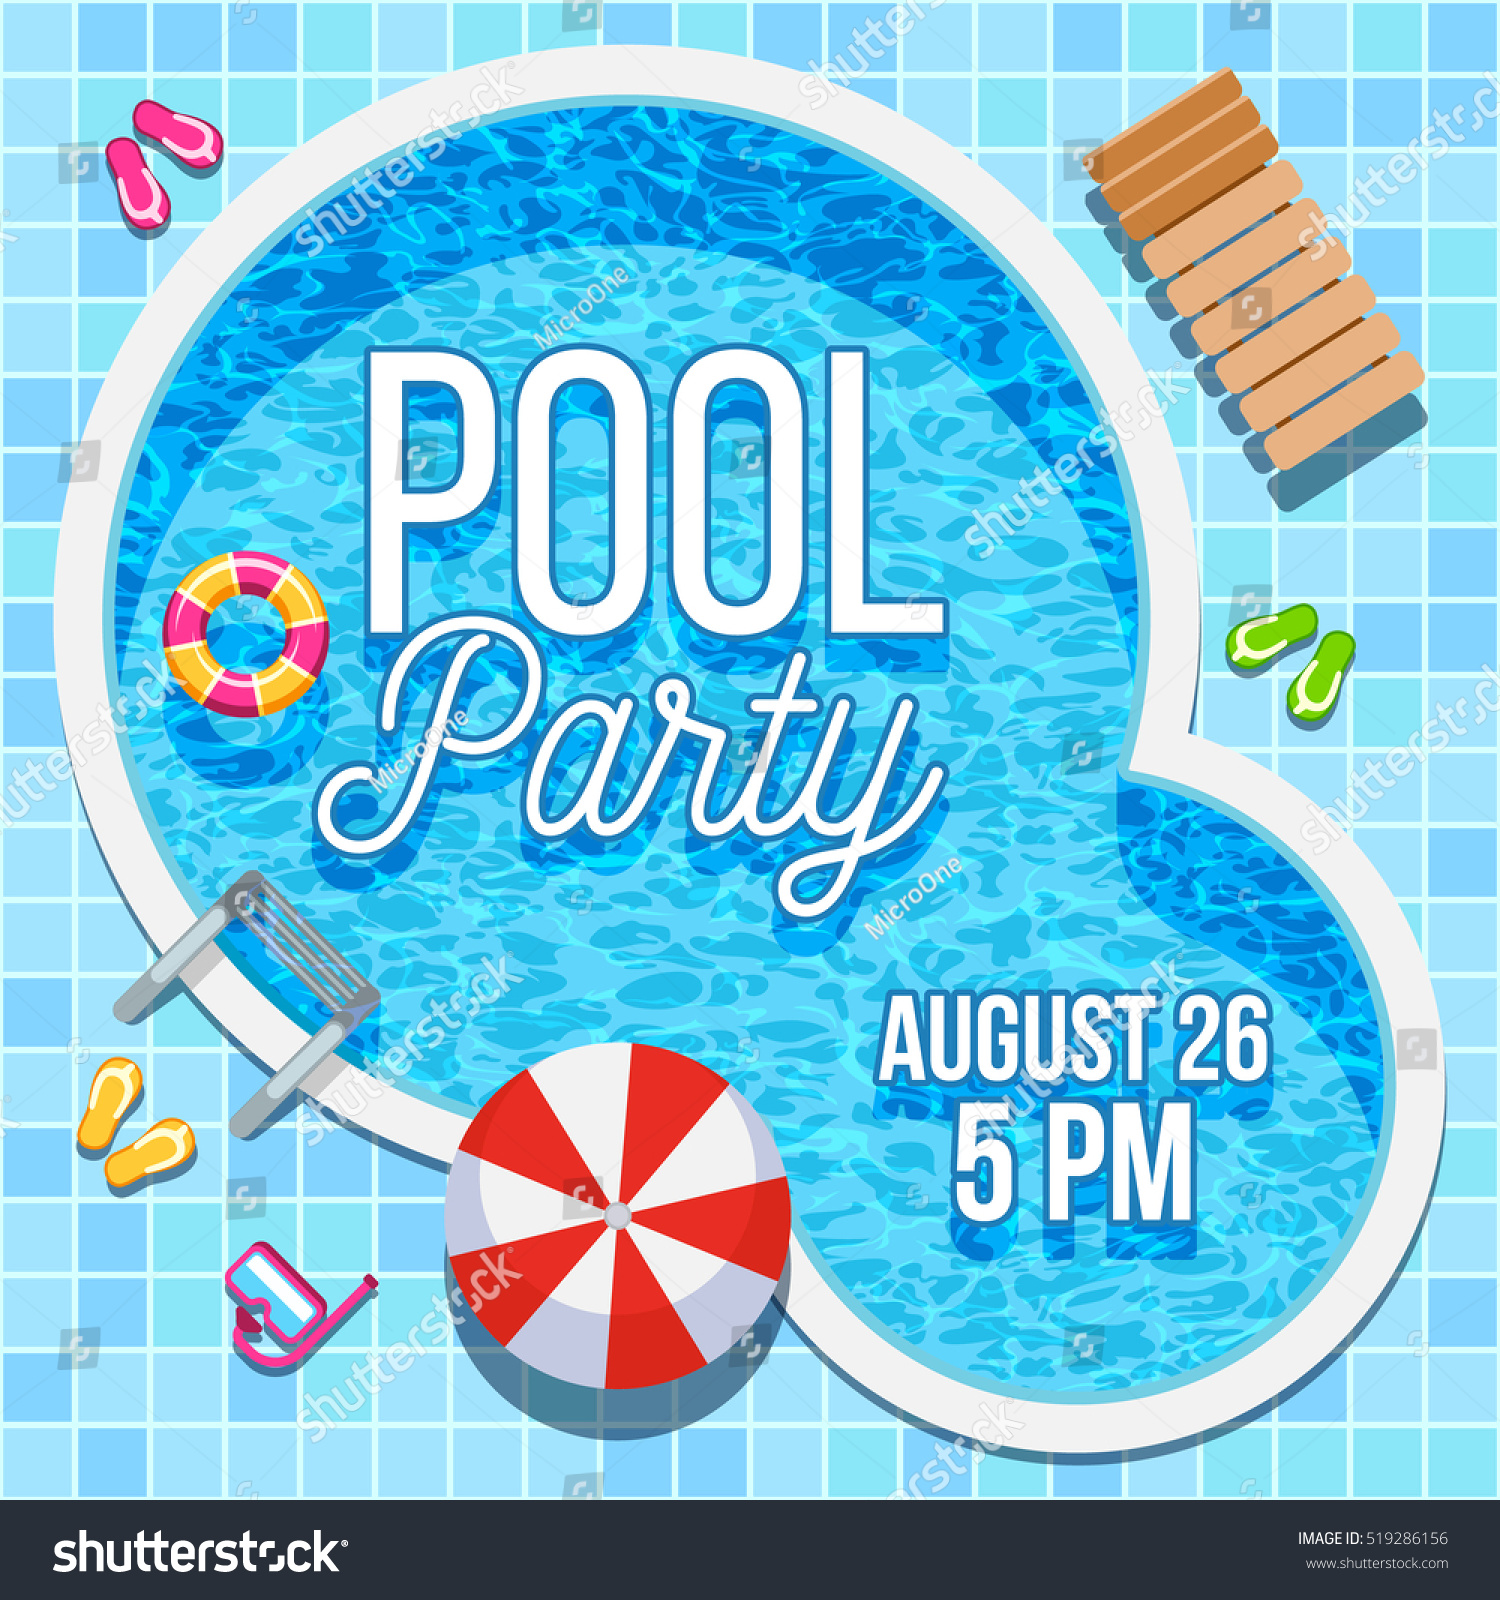 summer pool party invitation nobody waterのイラスト素材 519286156